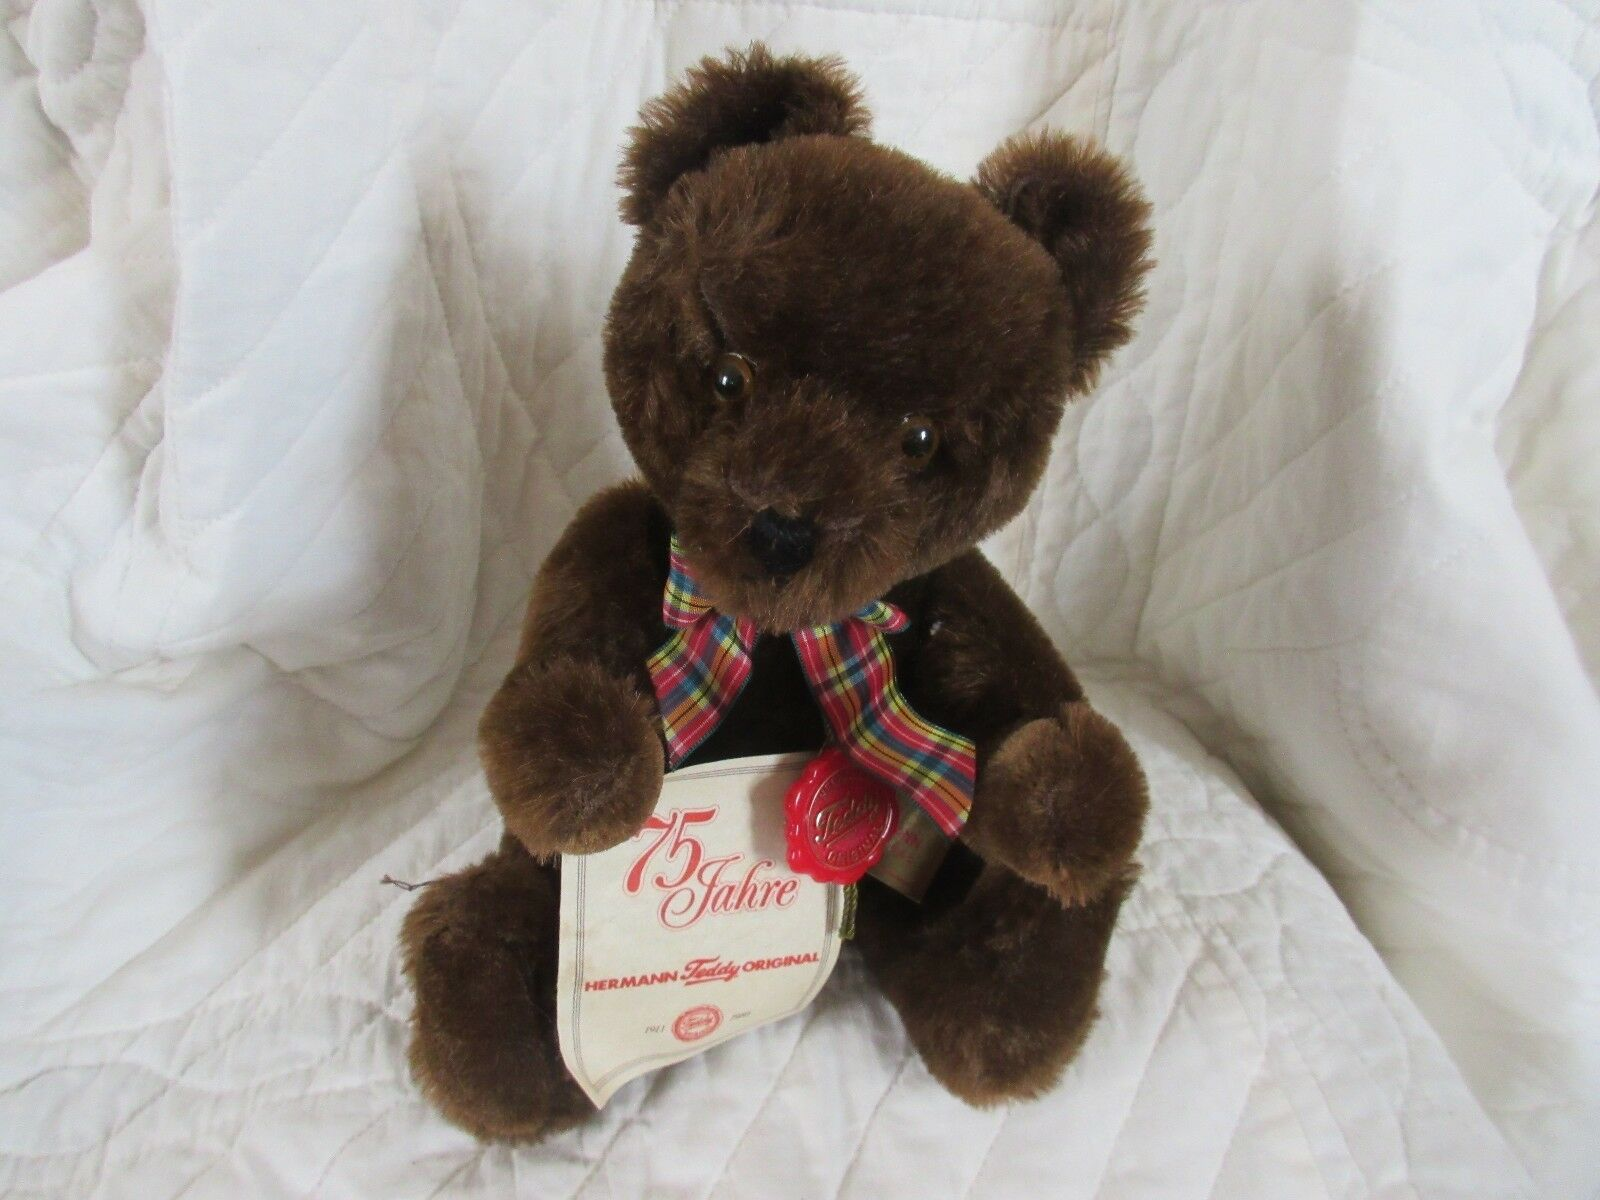 Hermann Teddy Original 75th anniversary 1986